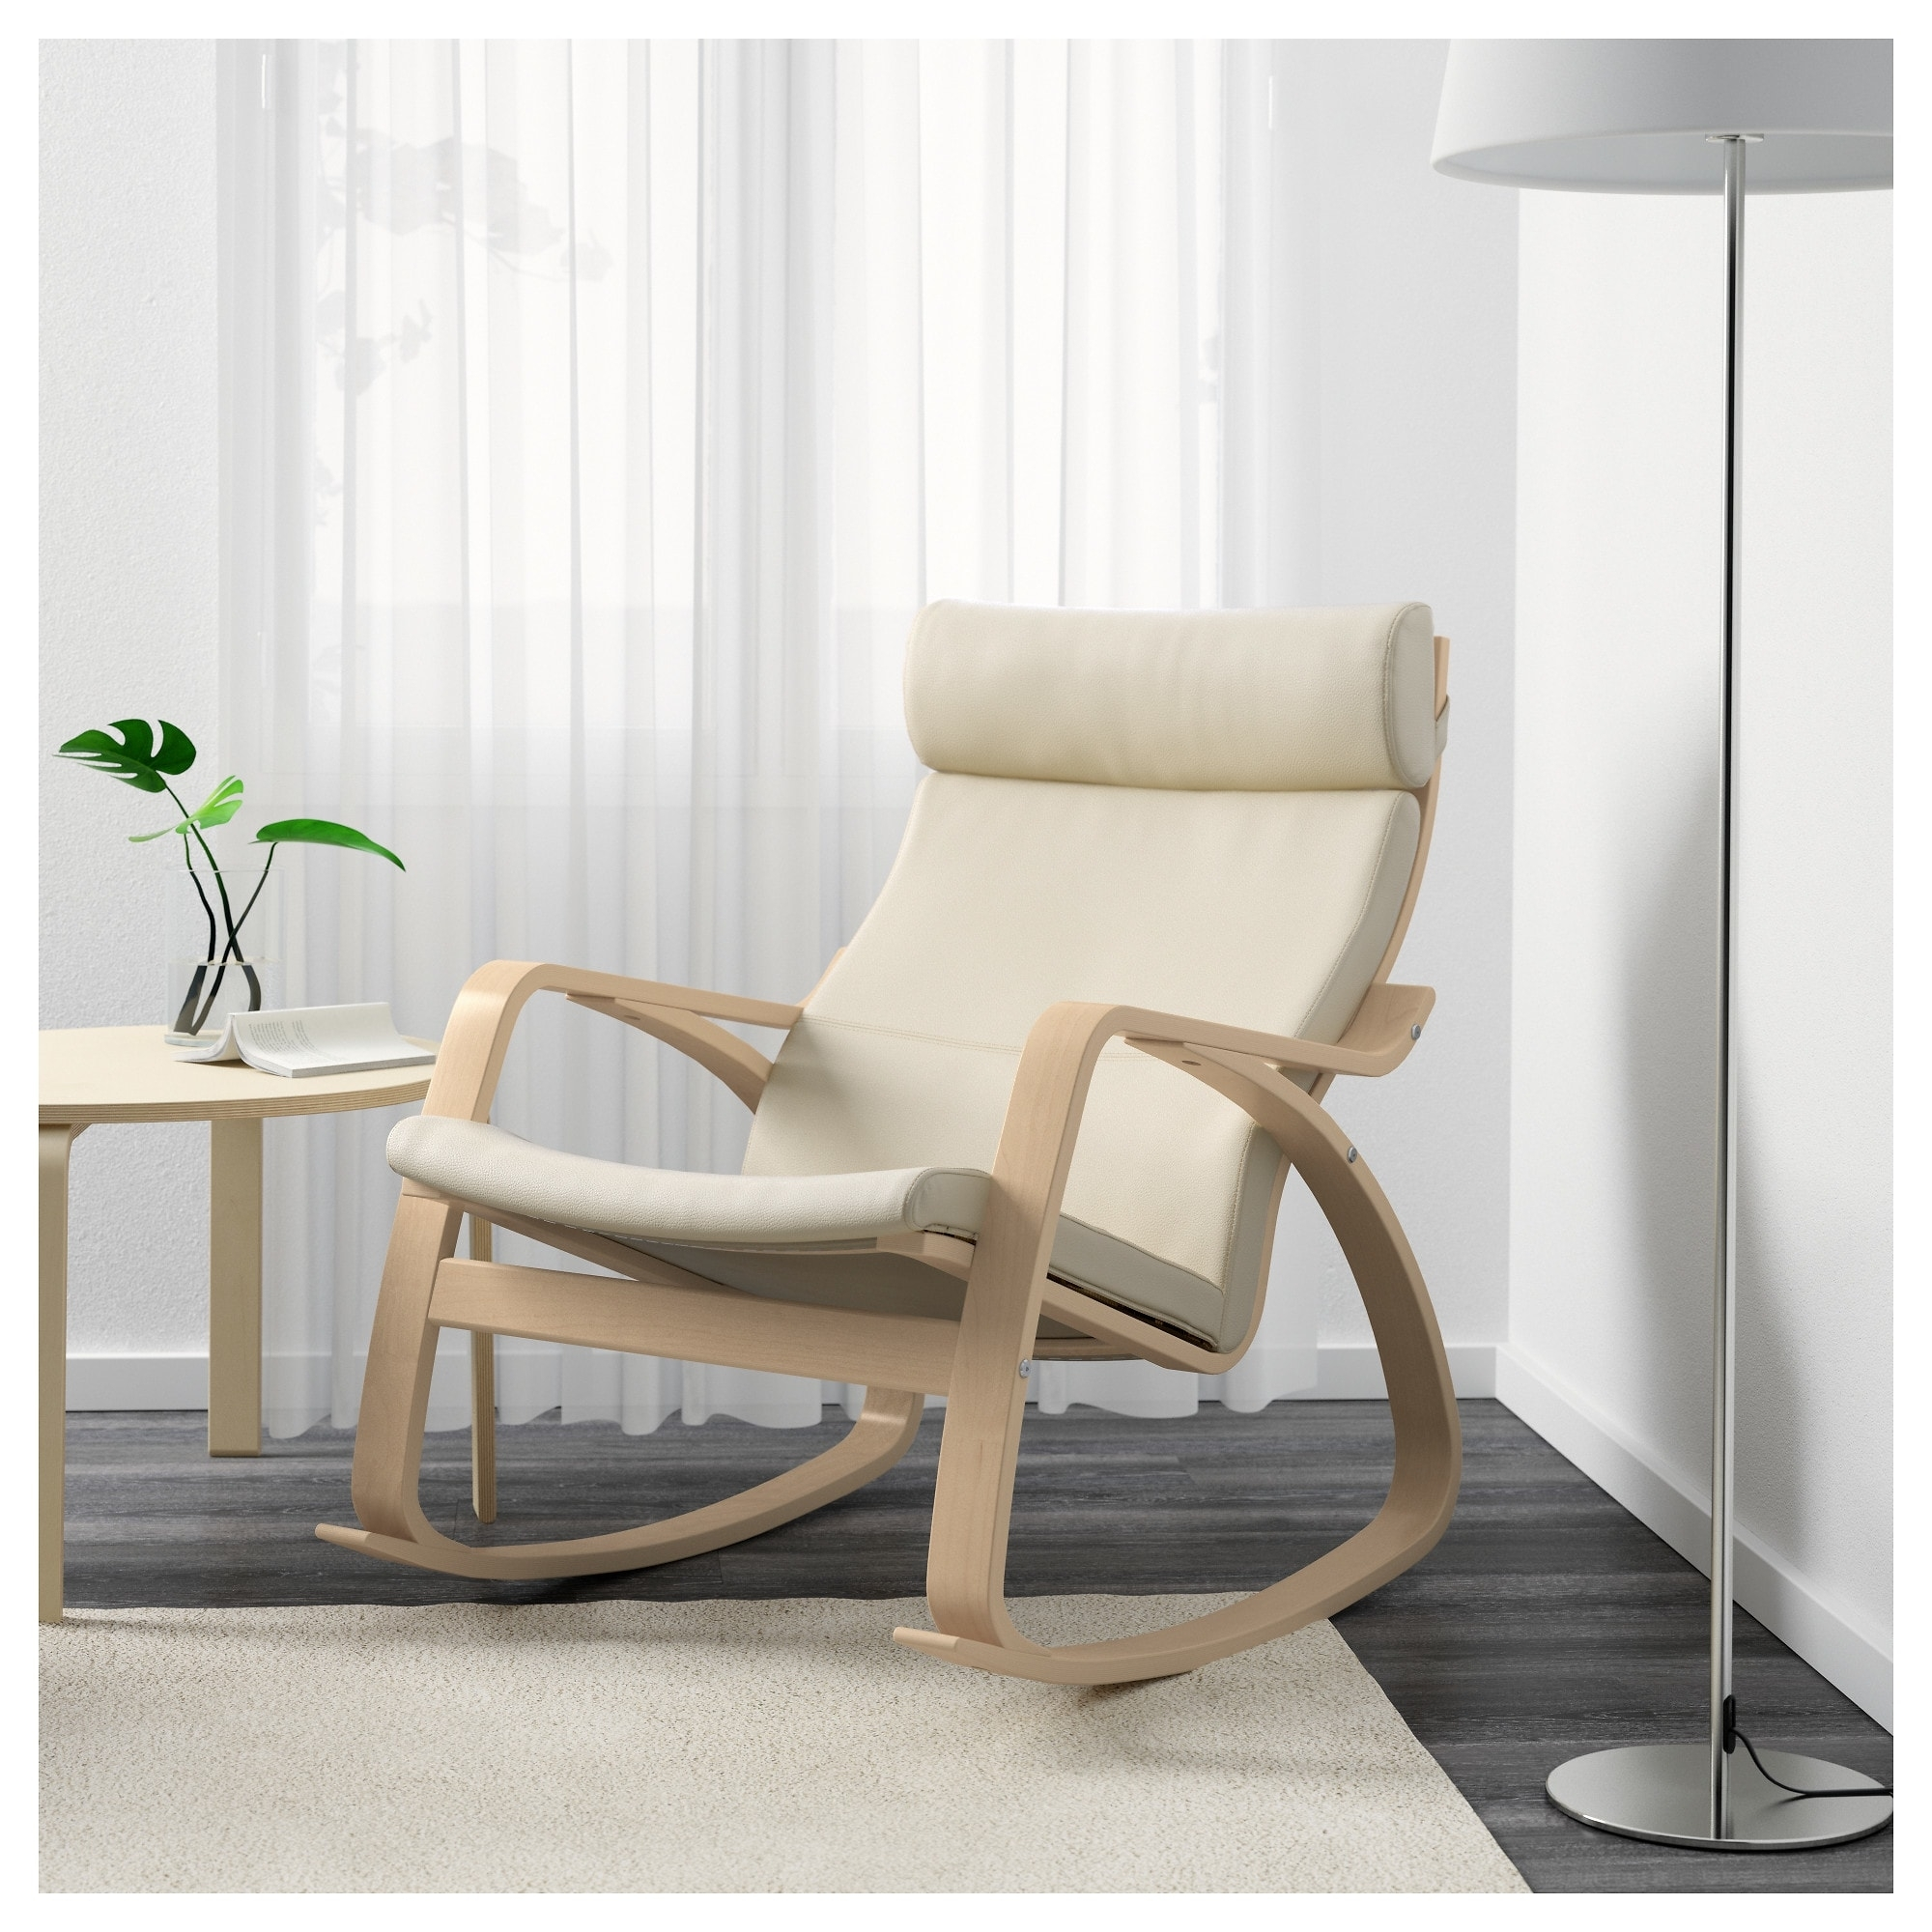 Inspiration about Poäng Rocking Chair Birch Veneer/glose Eggshell – Ikea With Regard To Rocking Chairs For Adults (#9 of 15)